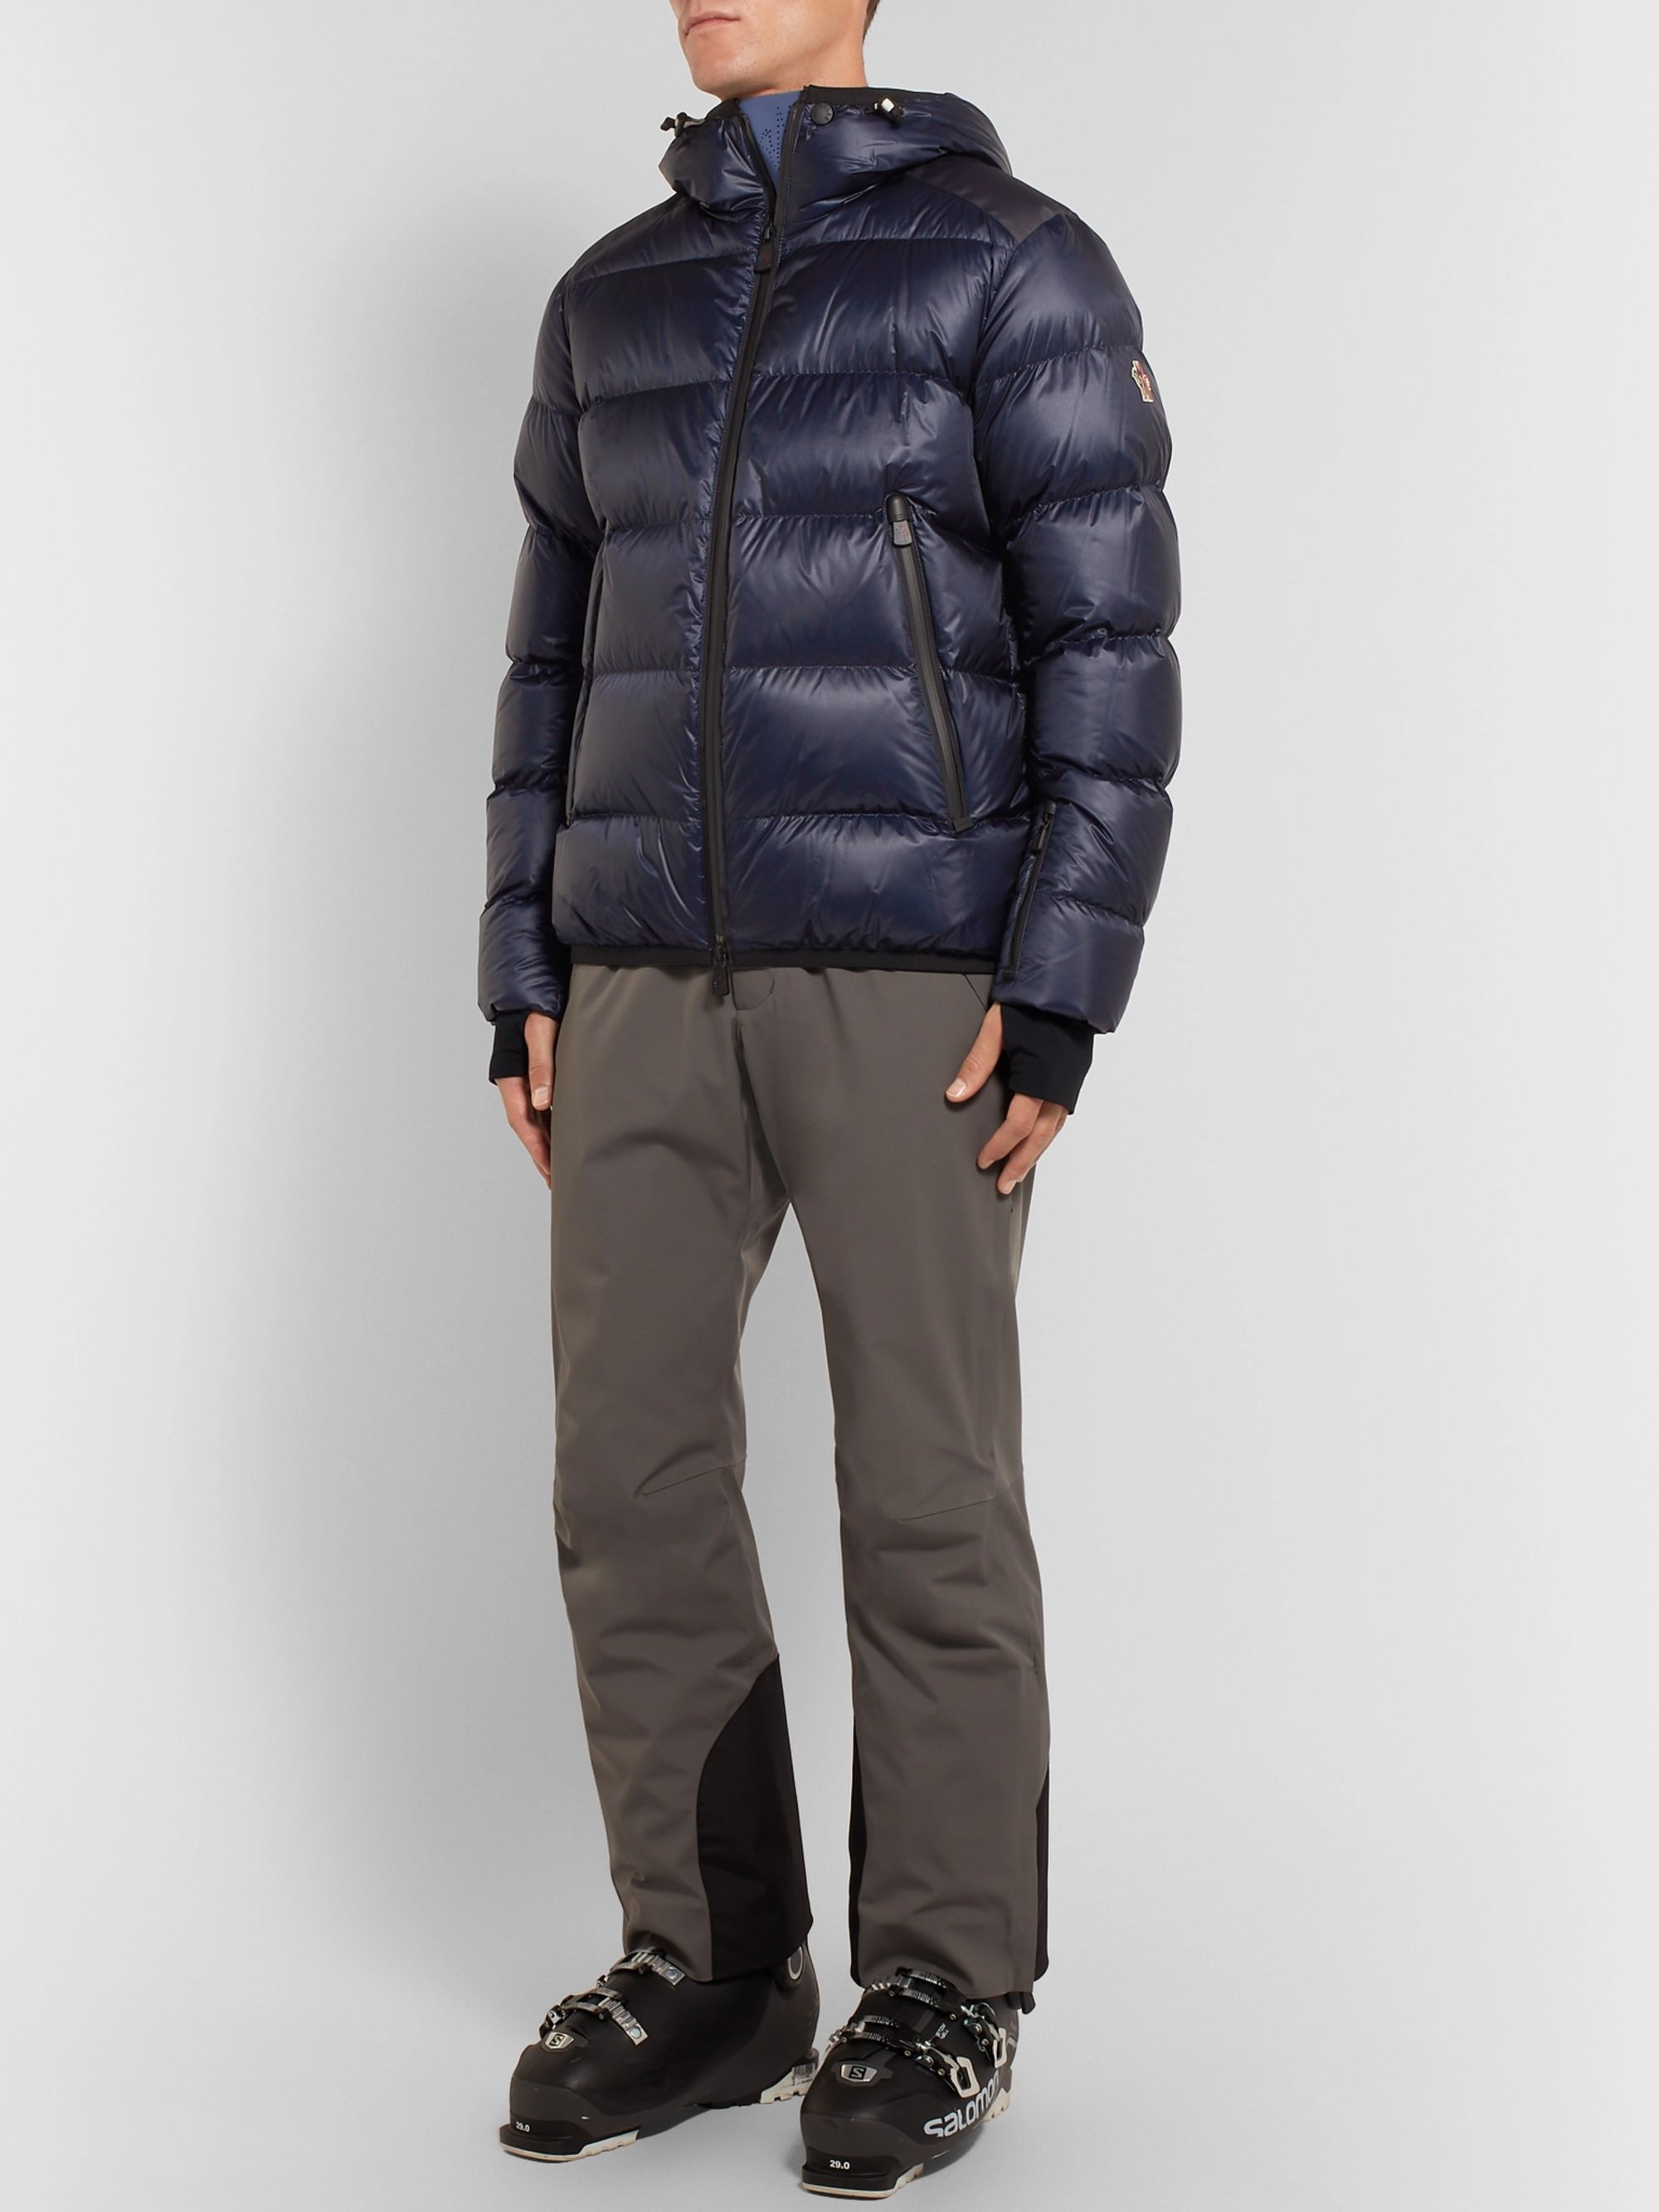 save off 7869c 98443 Hintertux Quilted Ski Jacket